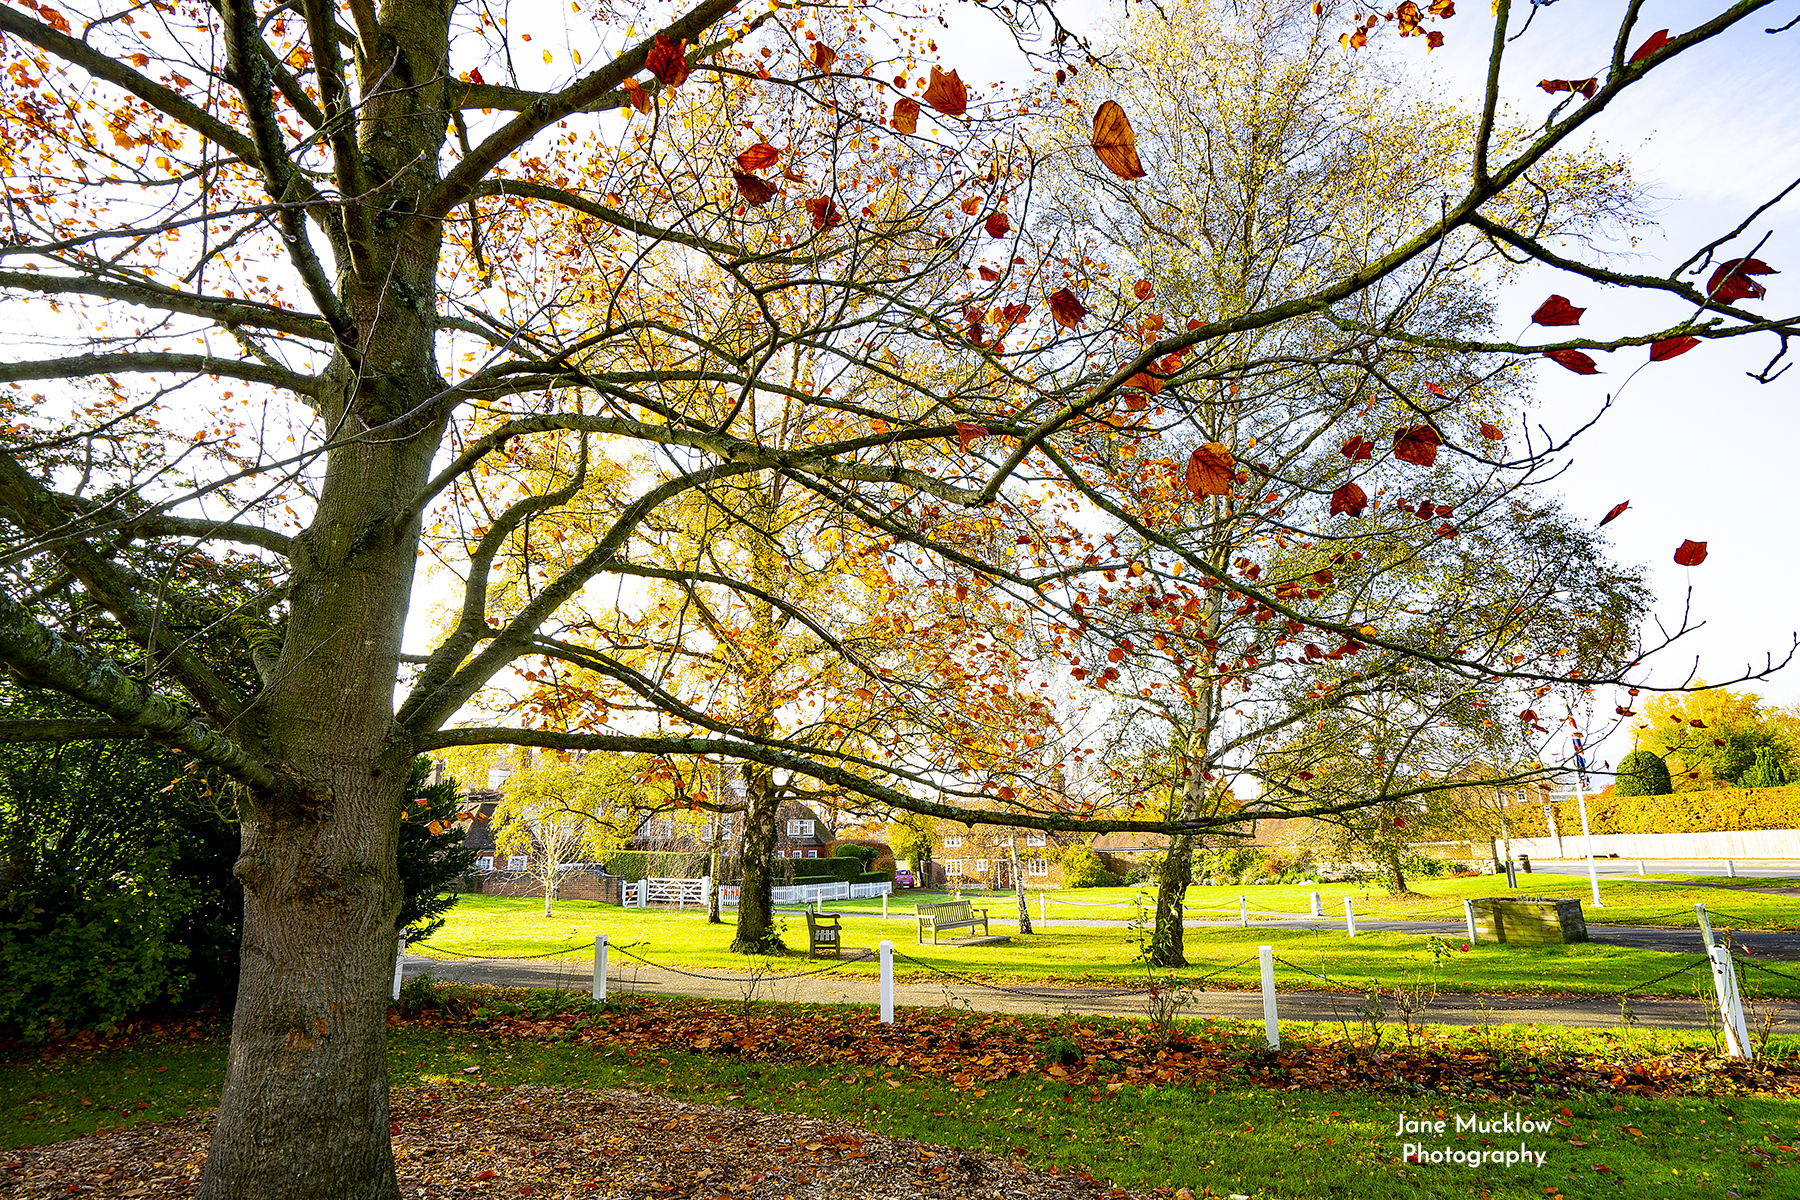 Photo of Autumn leaves on the village green Otford Kent by Jane Mucklow